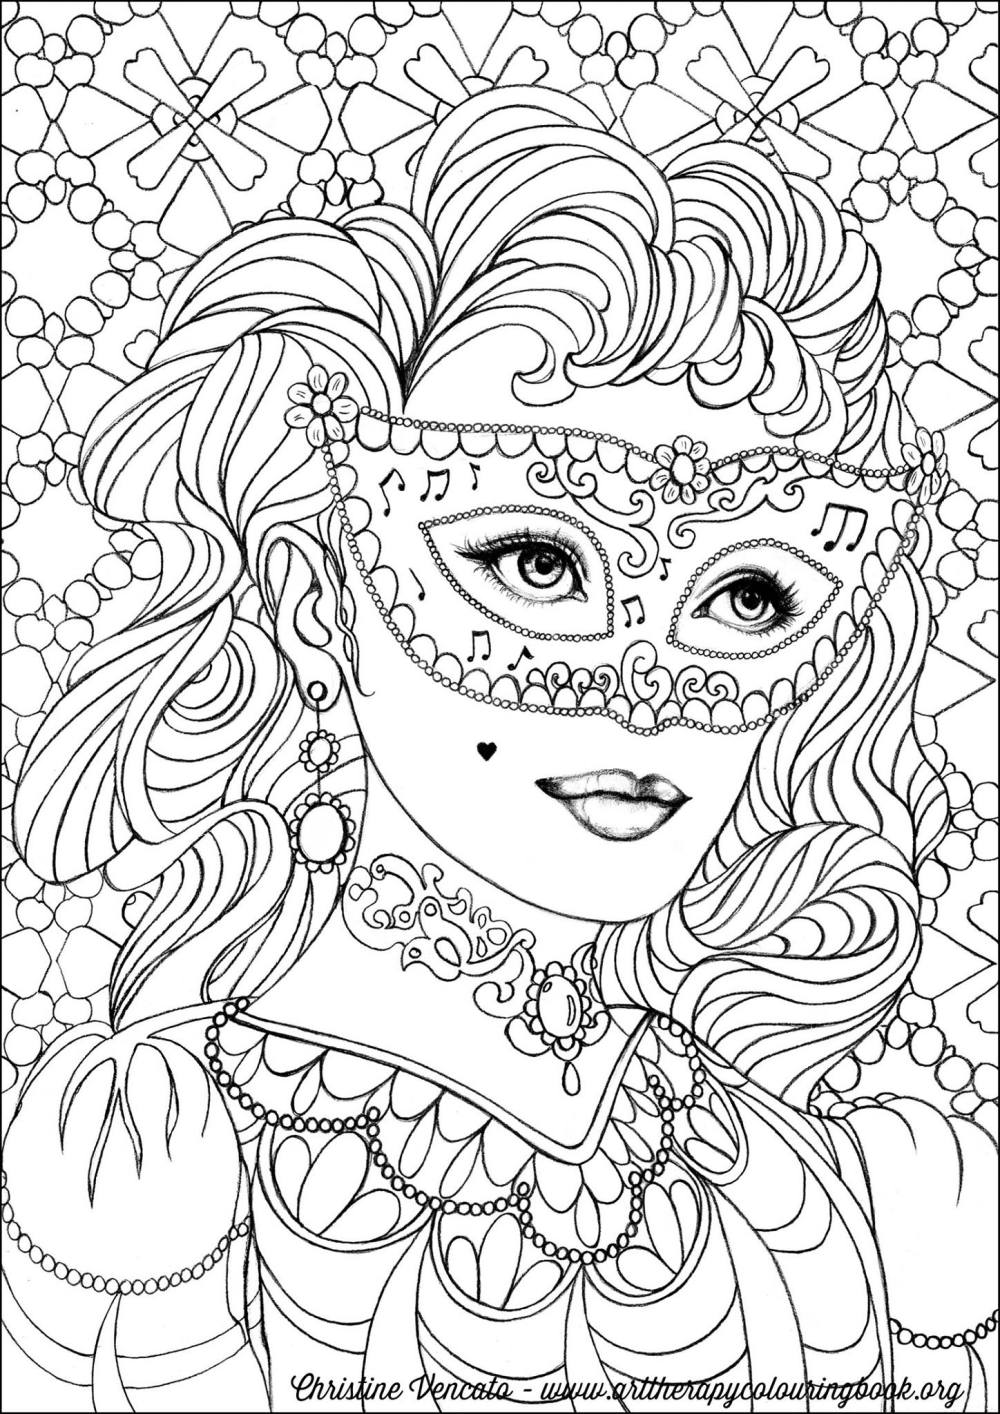 Art therapy coloring book michael omara - Free Coloring Page From Adult Coloring Worldwide Art By Christine Vencato